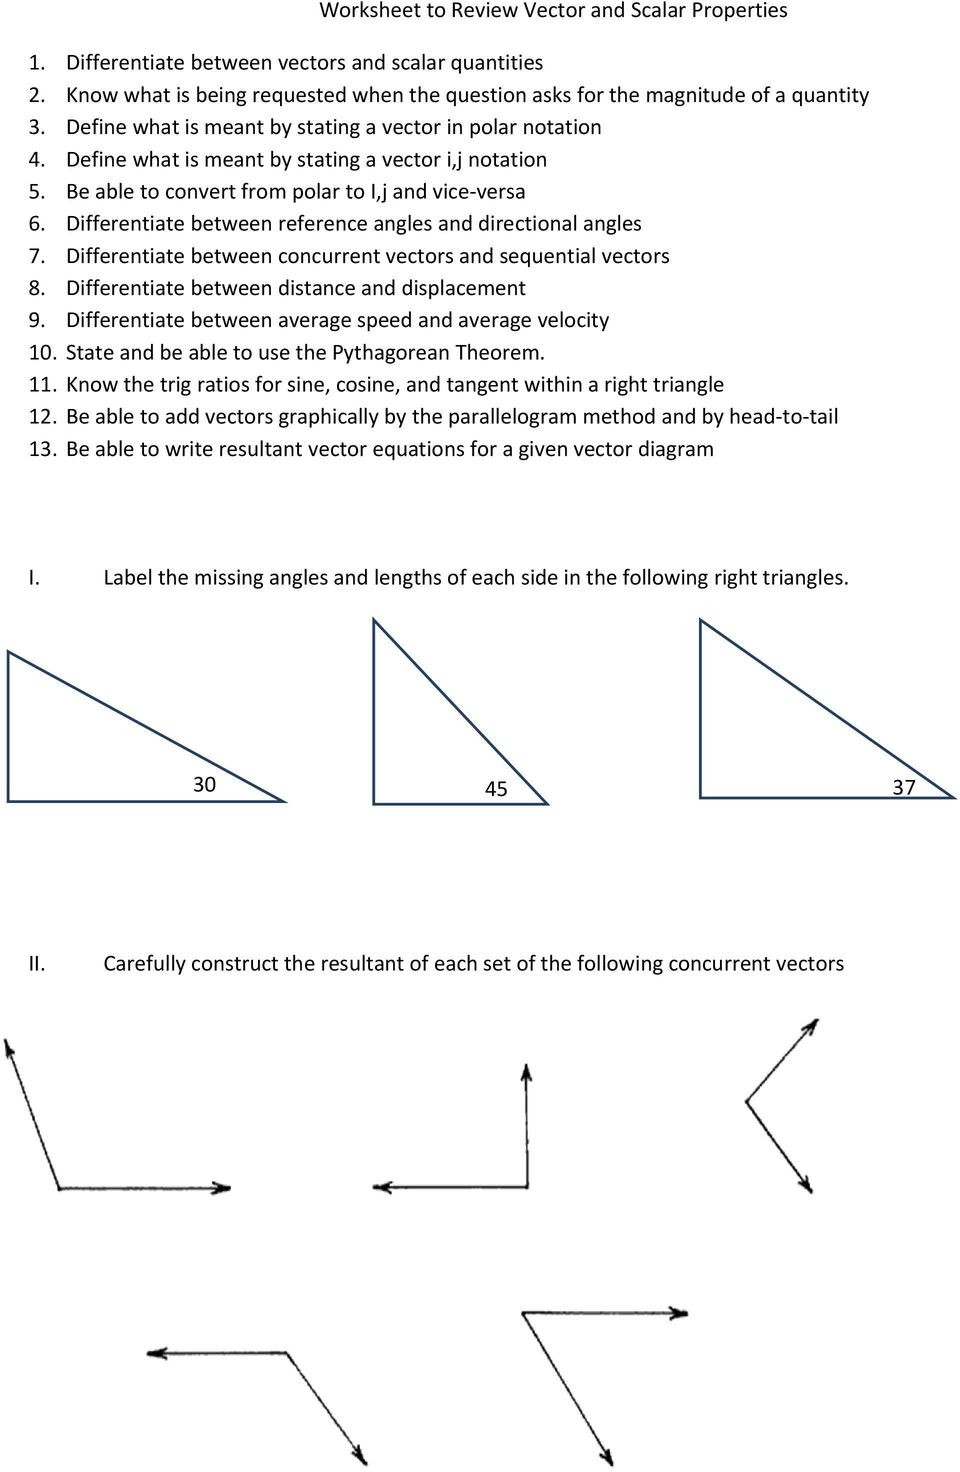 Vector Worksheet Physics Answers Worksheet to Review Vector and Scalar Properties Pdf Free